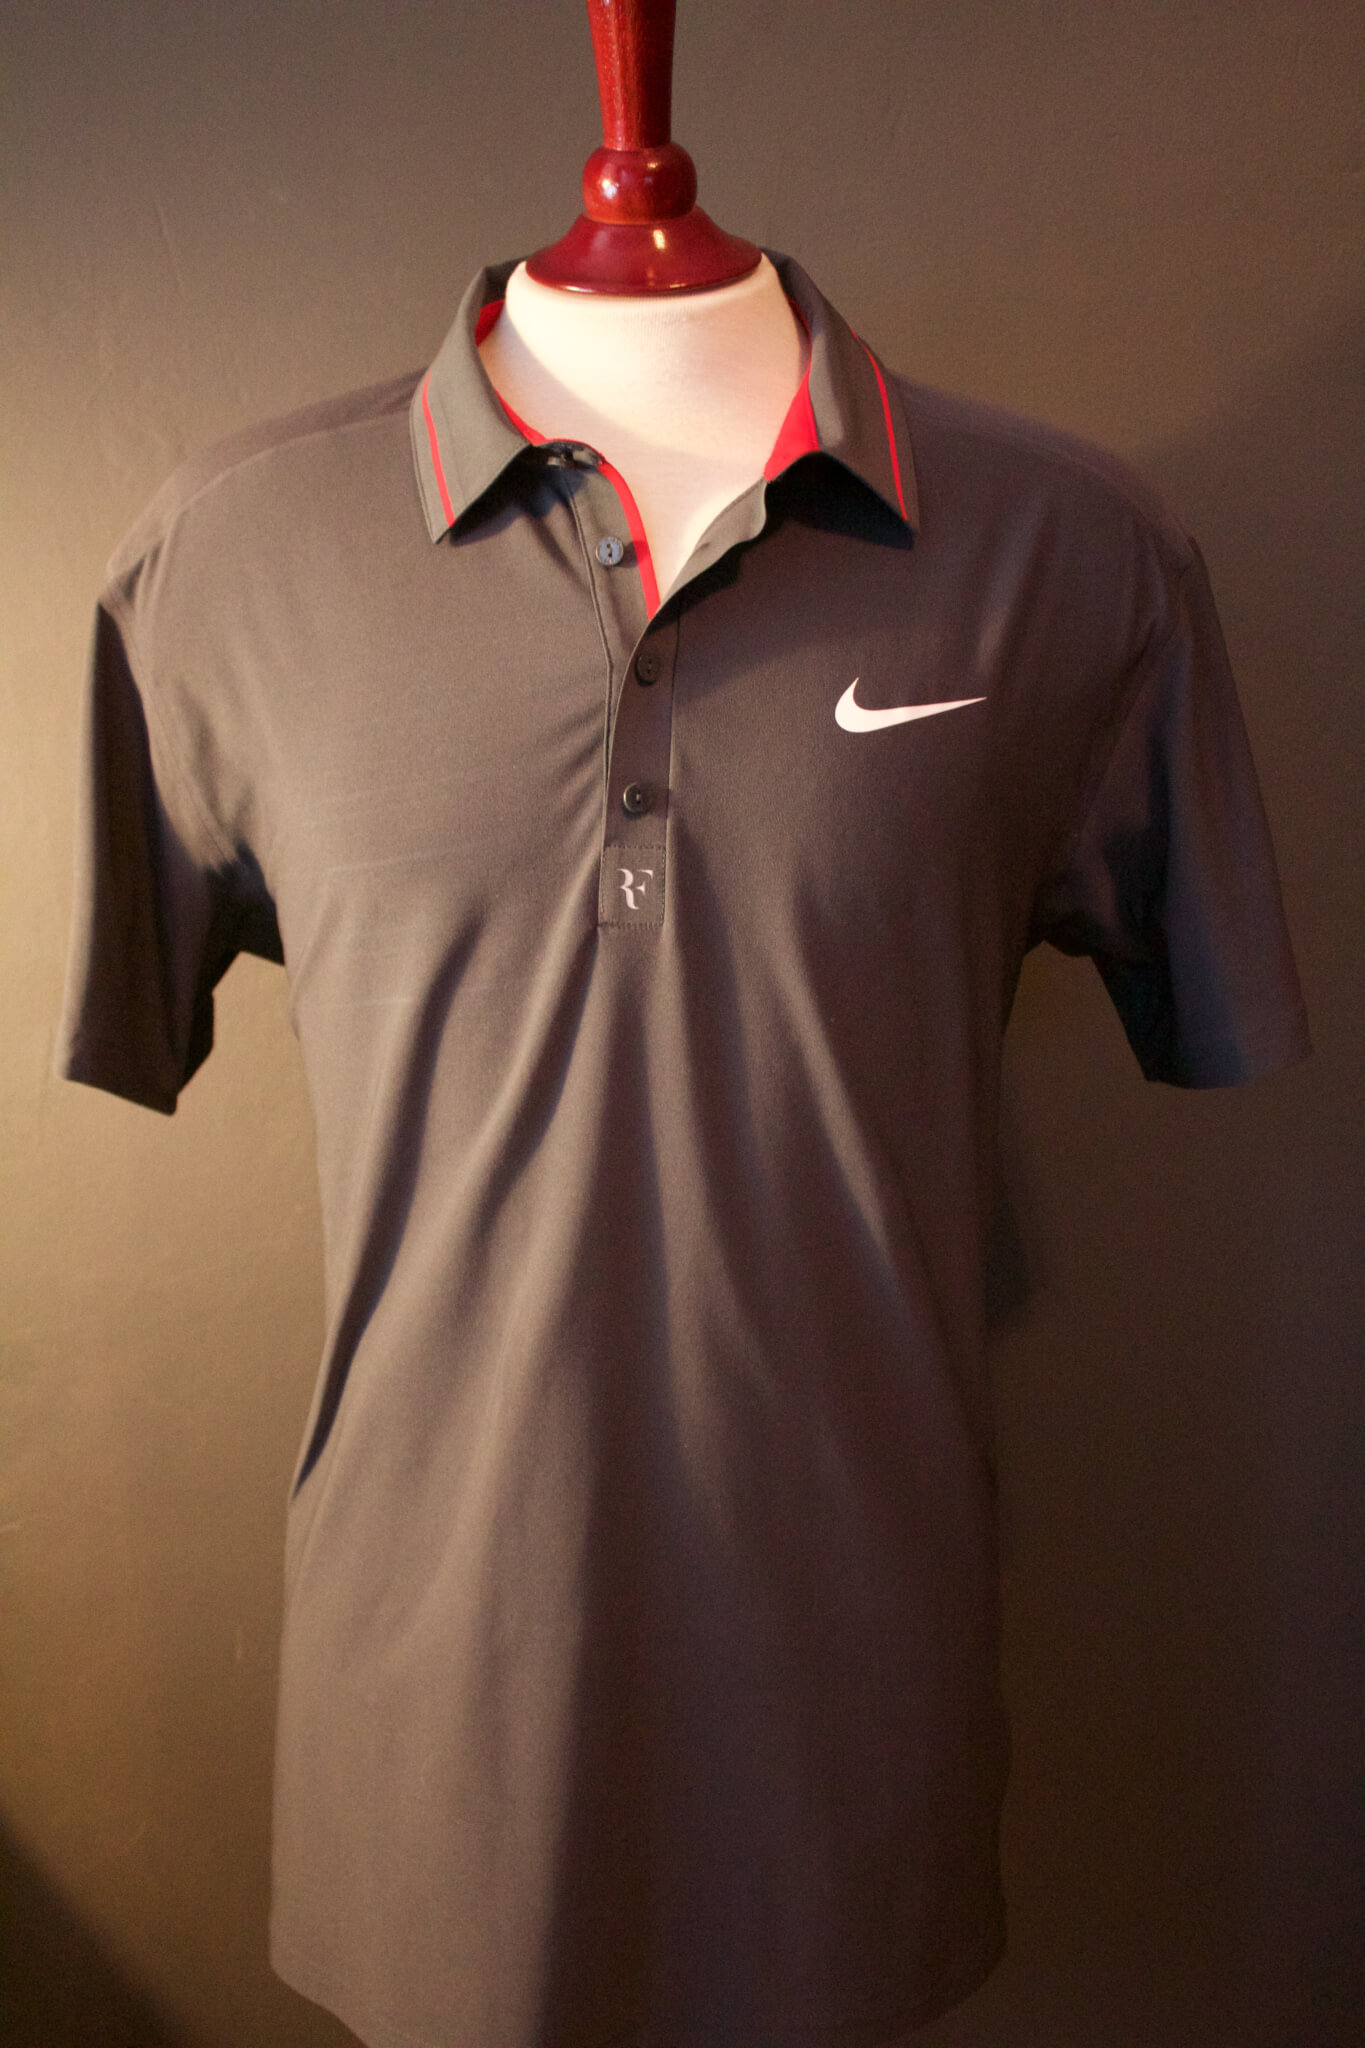 A roger federer game used custom nike tennis shirt 2011 for Customize nike shirts online